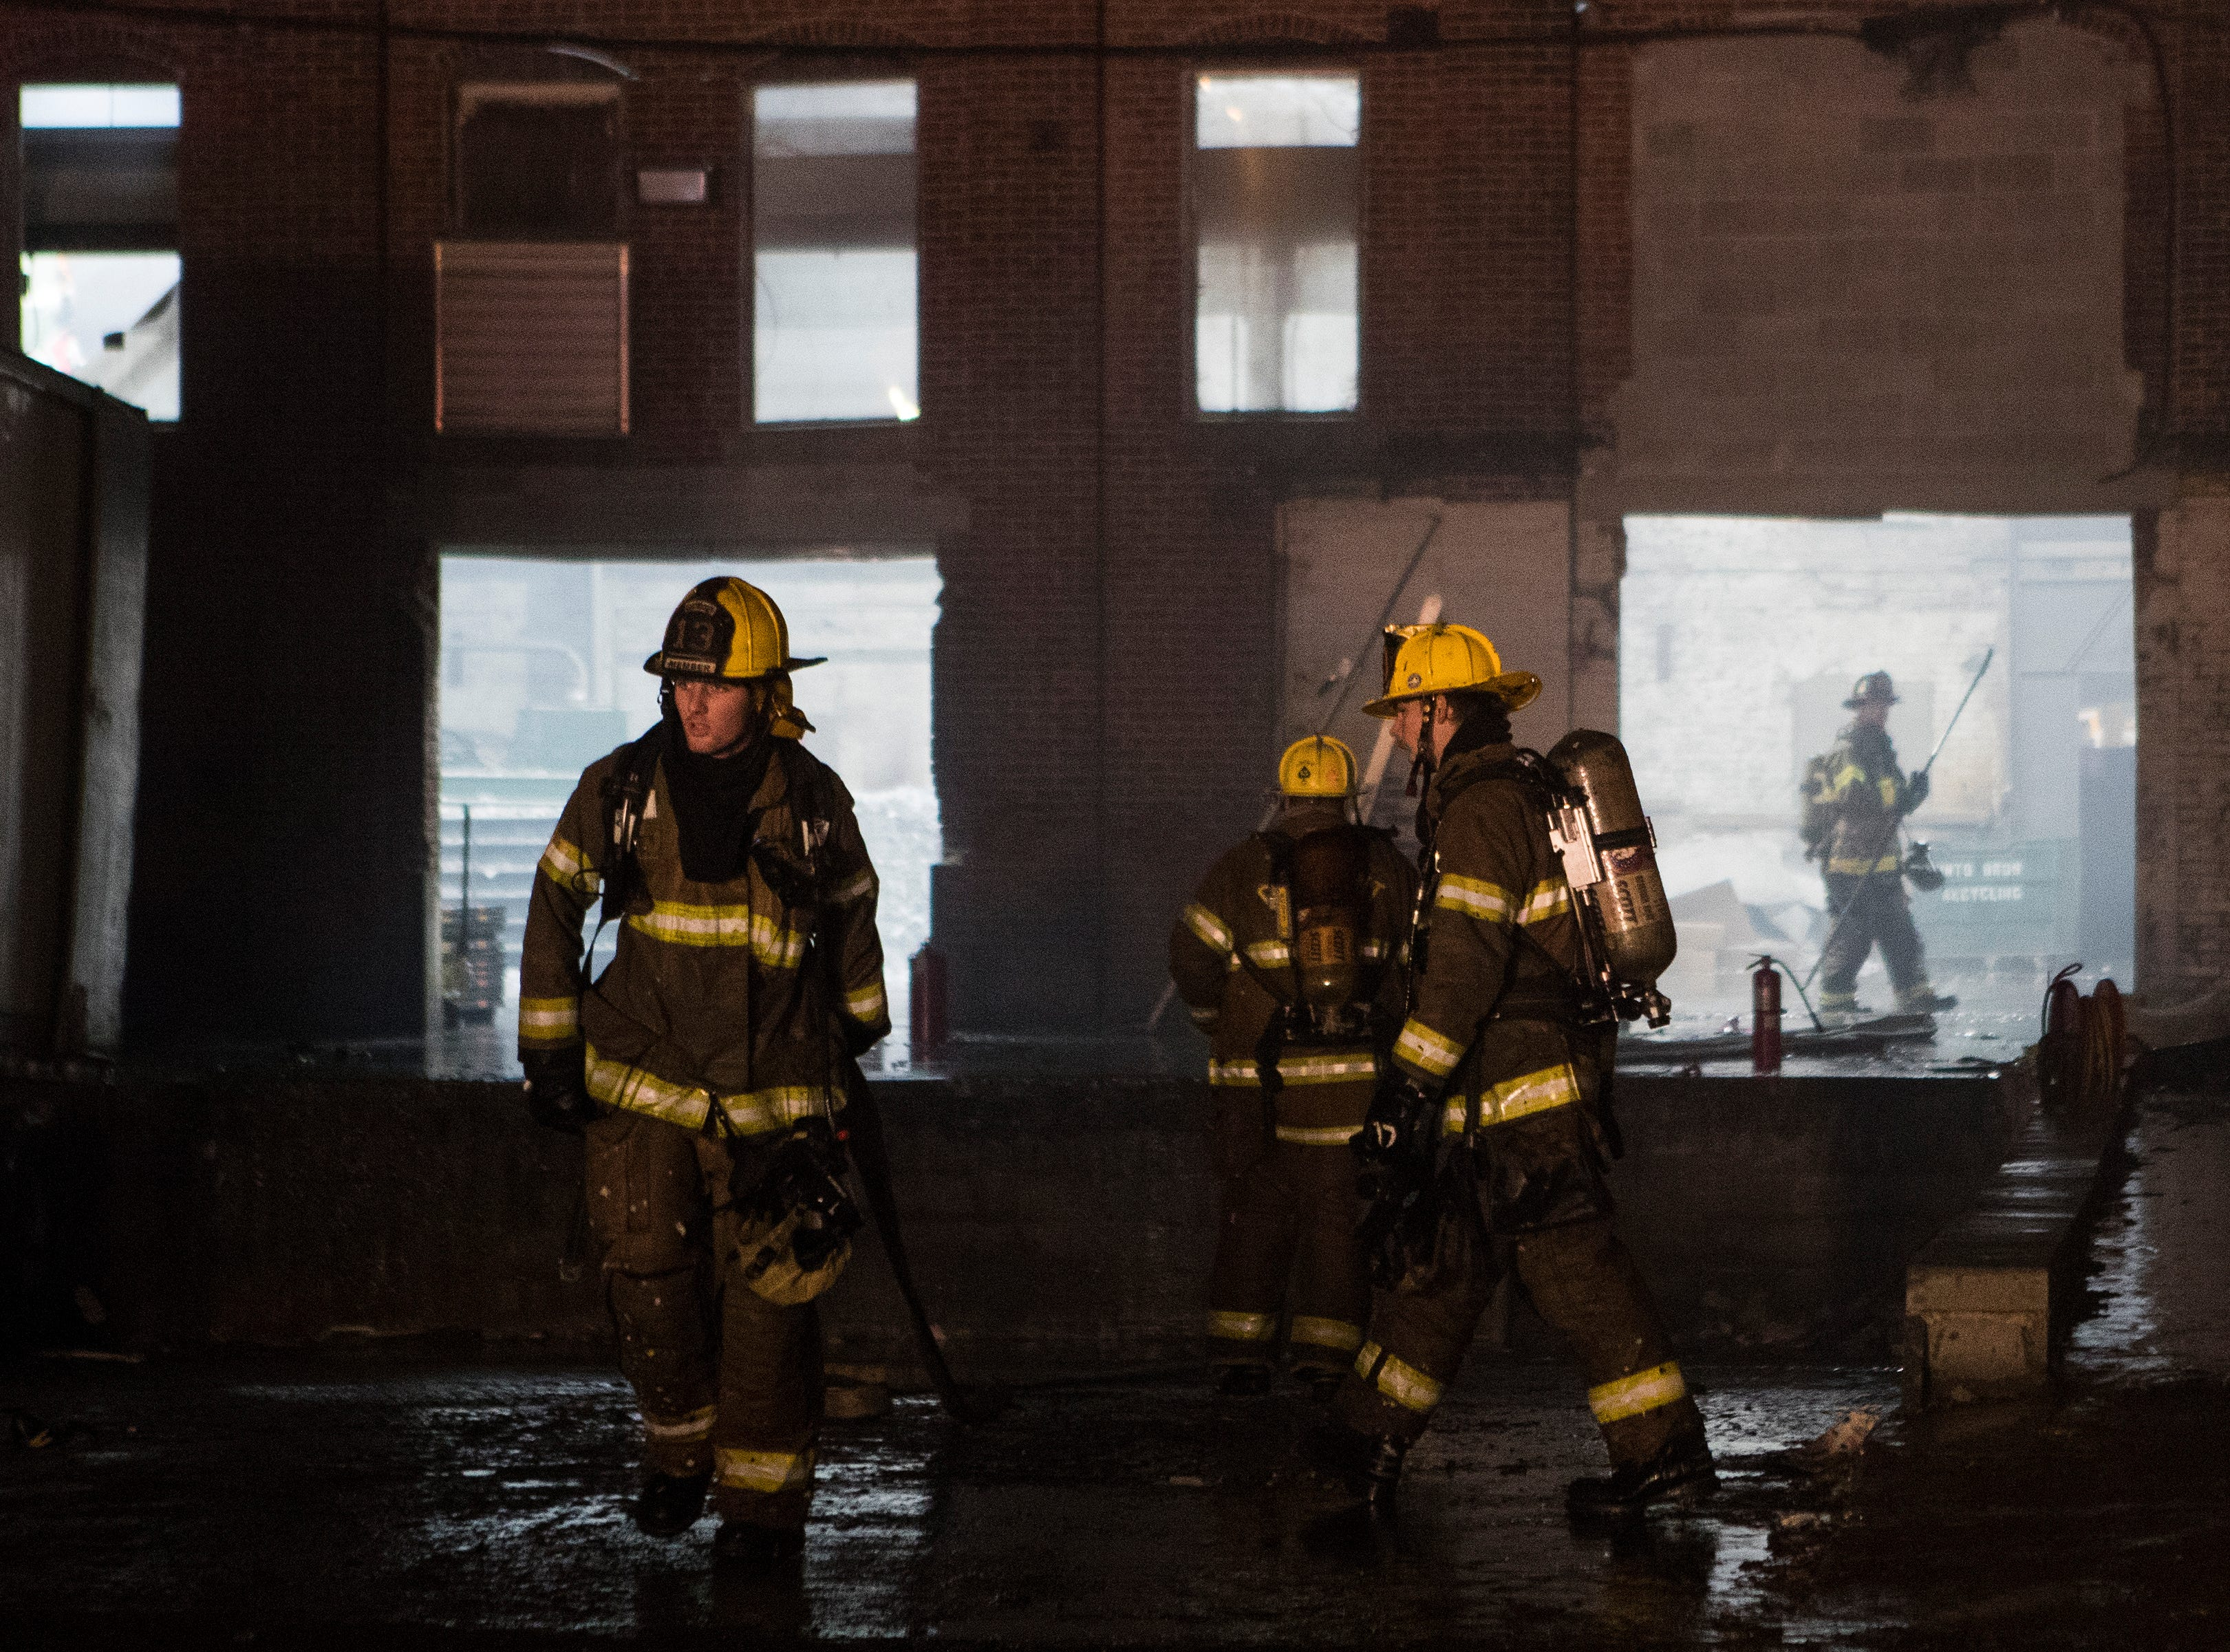 Multiple fire companies work the scene of a paper fire at Recycling Management Resources Wednesday night in Fox Point.